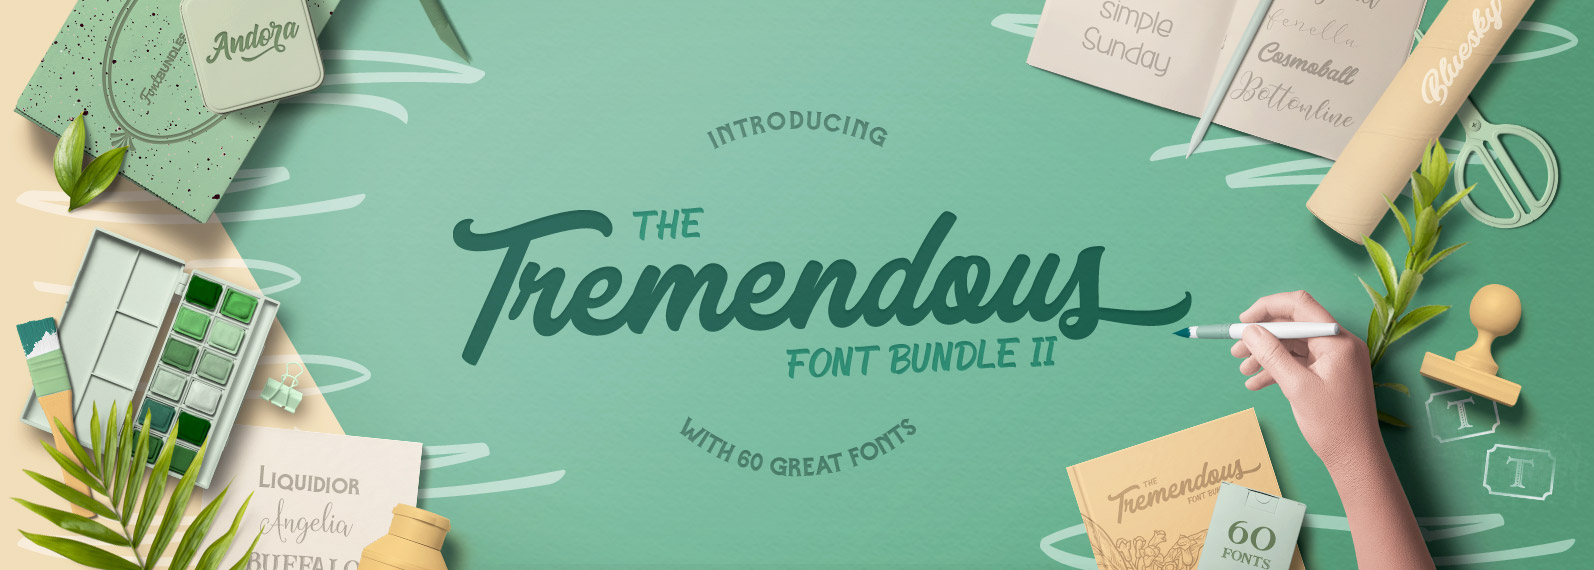 The Tremendous Font Bundle Volume II Cover